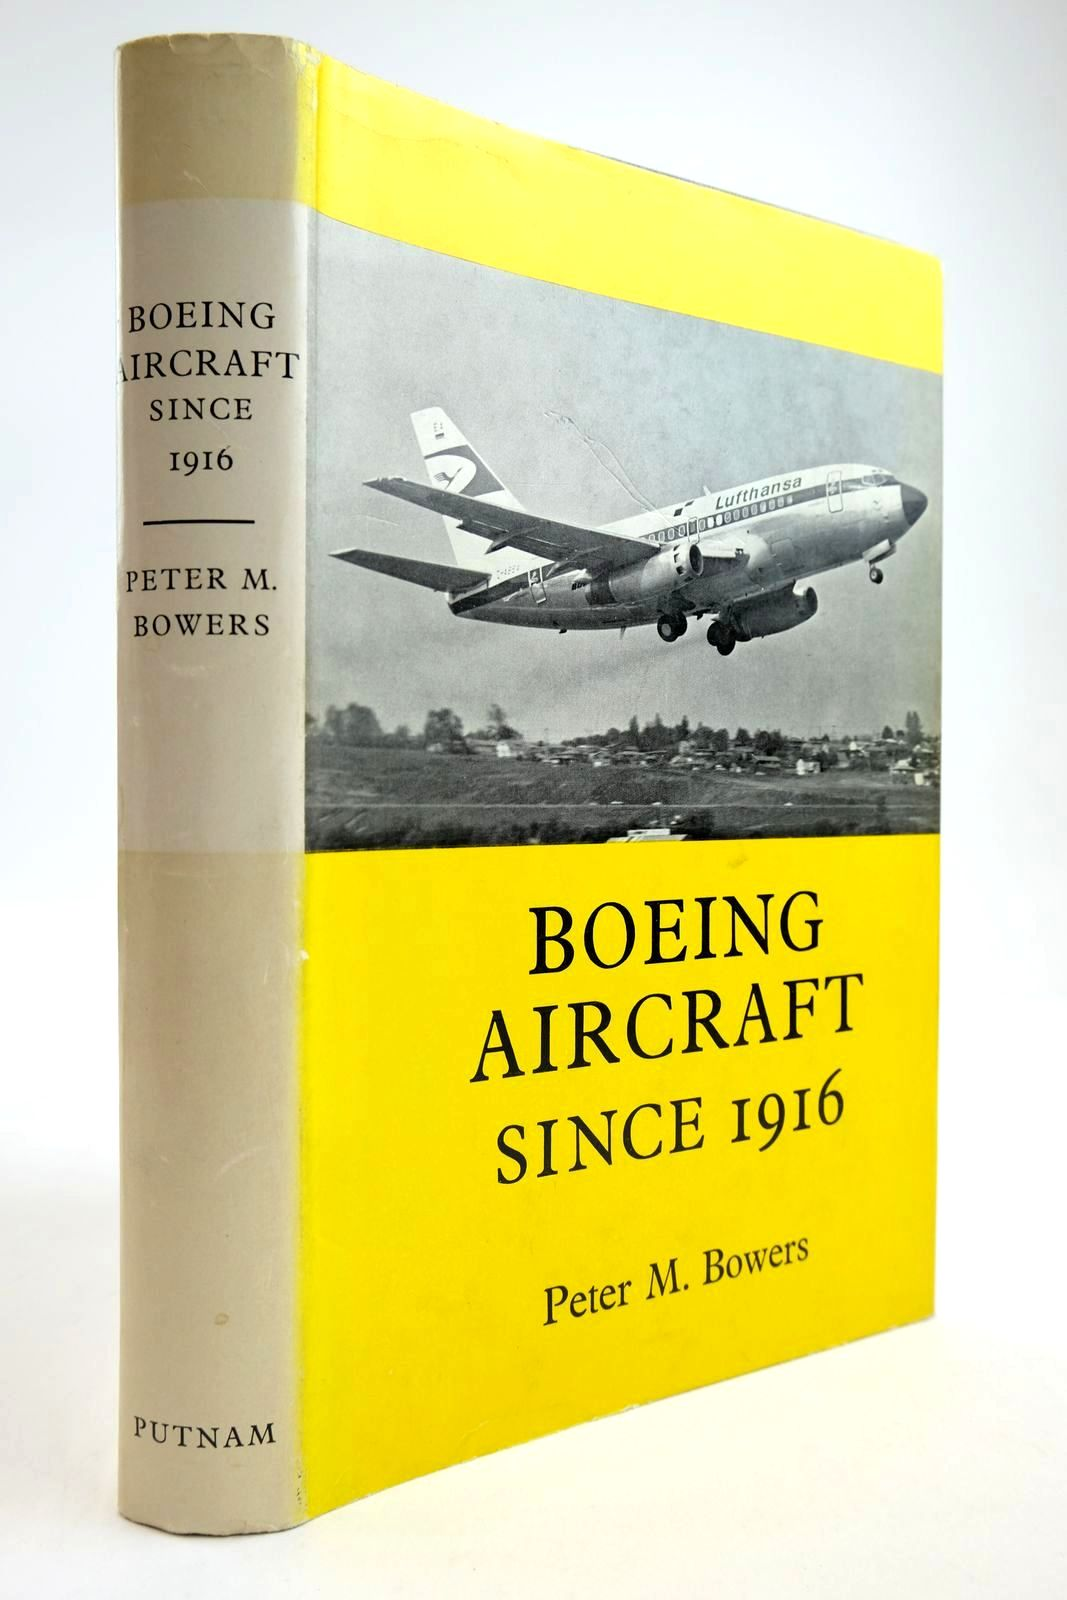 Photo of BOEING AIRCRAFT SINCE 1916 written by Bowers, Peter M. published by Putnam (STOCK CODE: 2134097)  for sale by Stella & Rose's Books